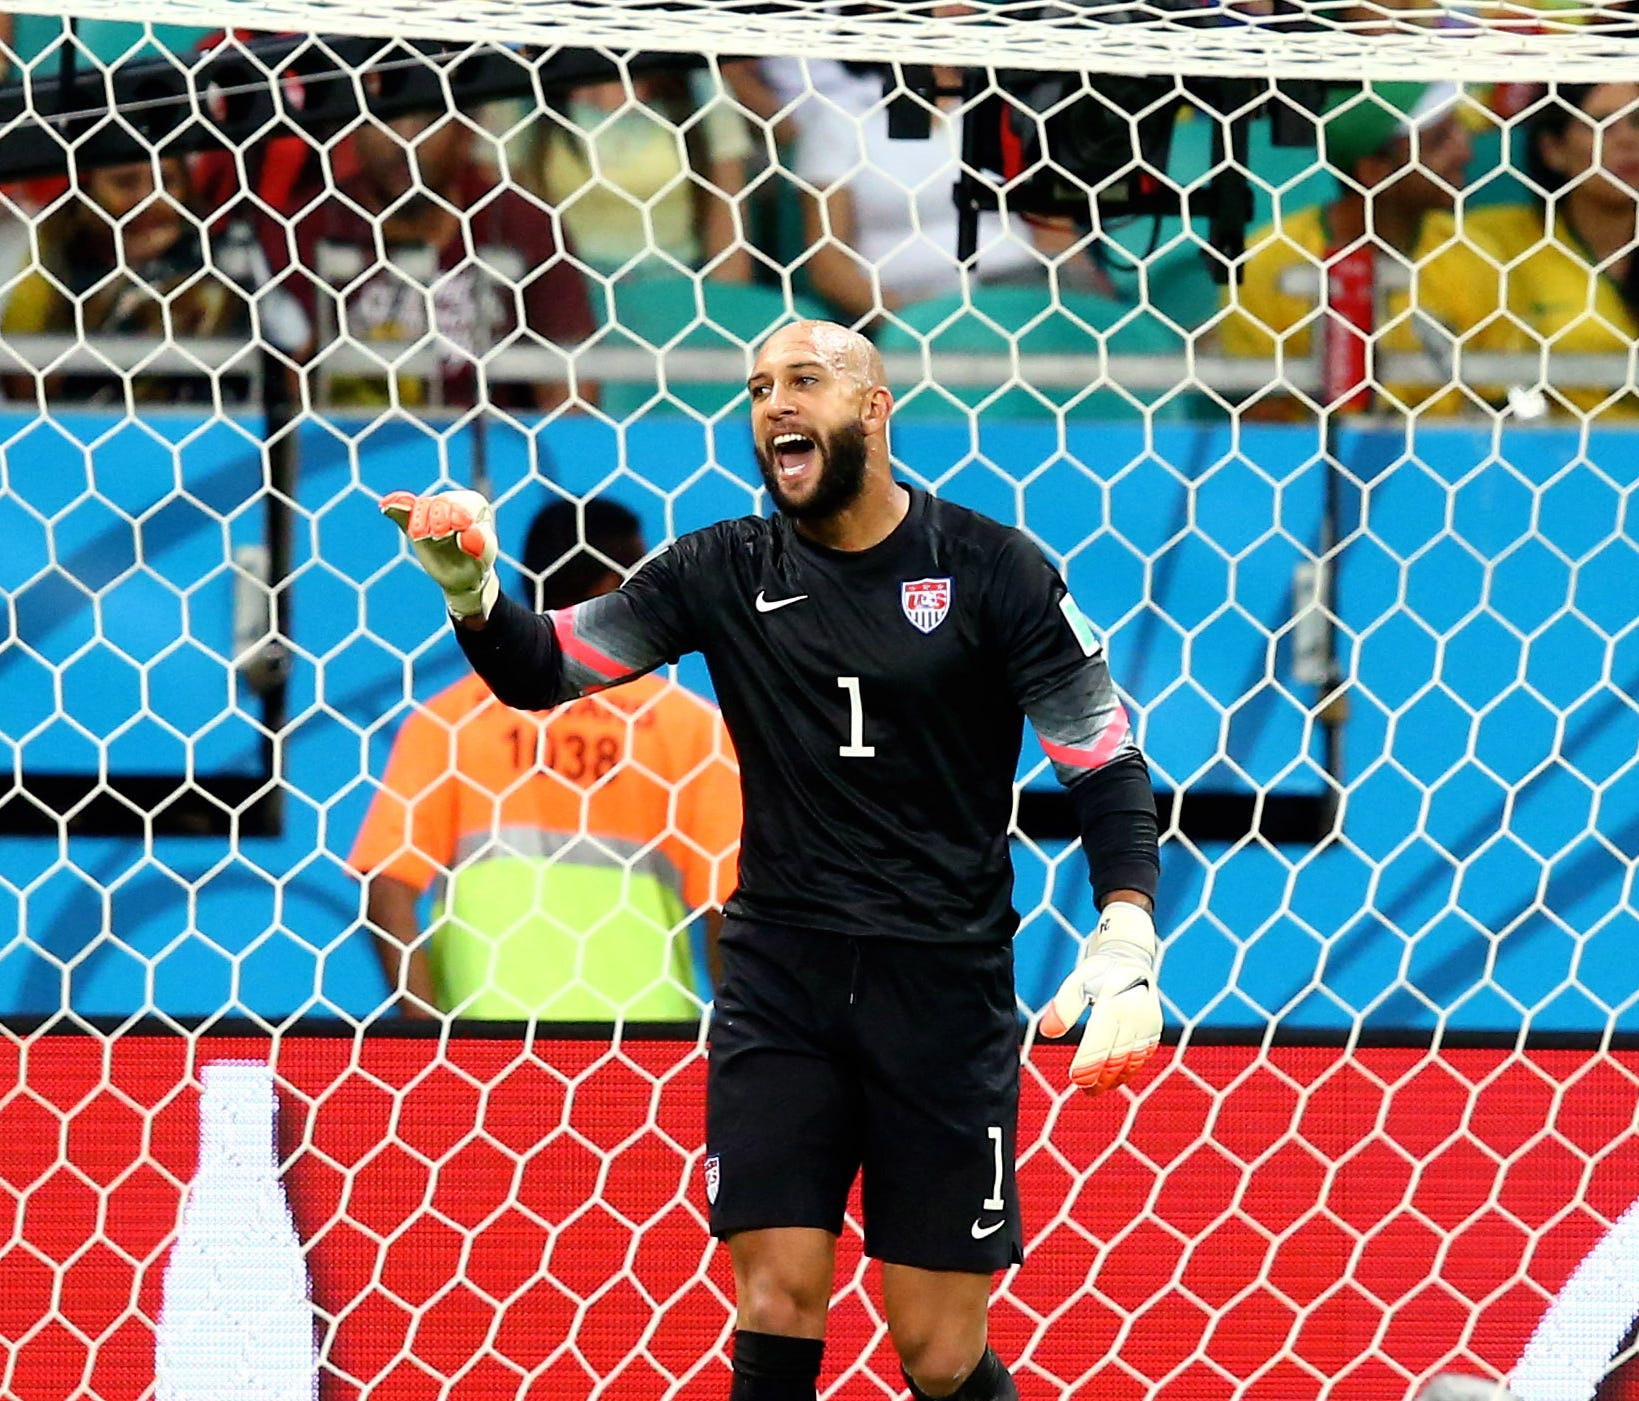 Tim Howard and the U.S. reached the round of 16 in the 2014 World Cup.